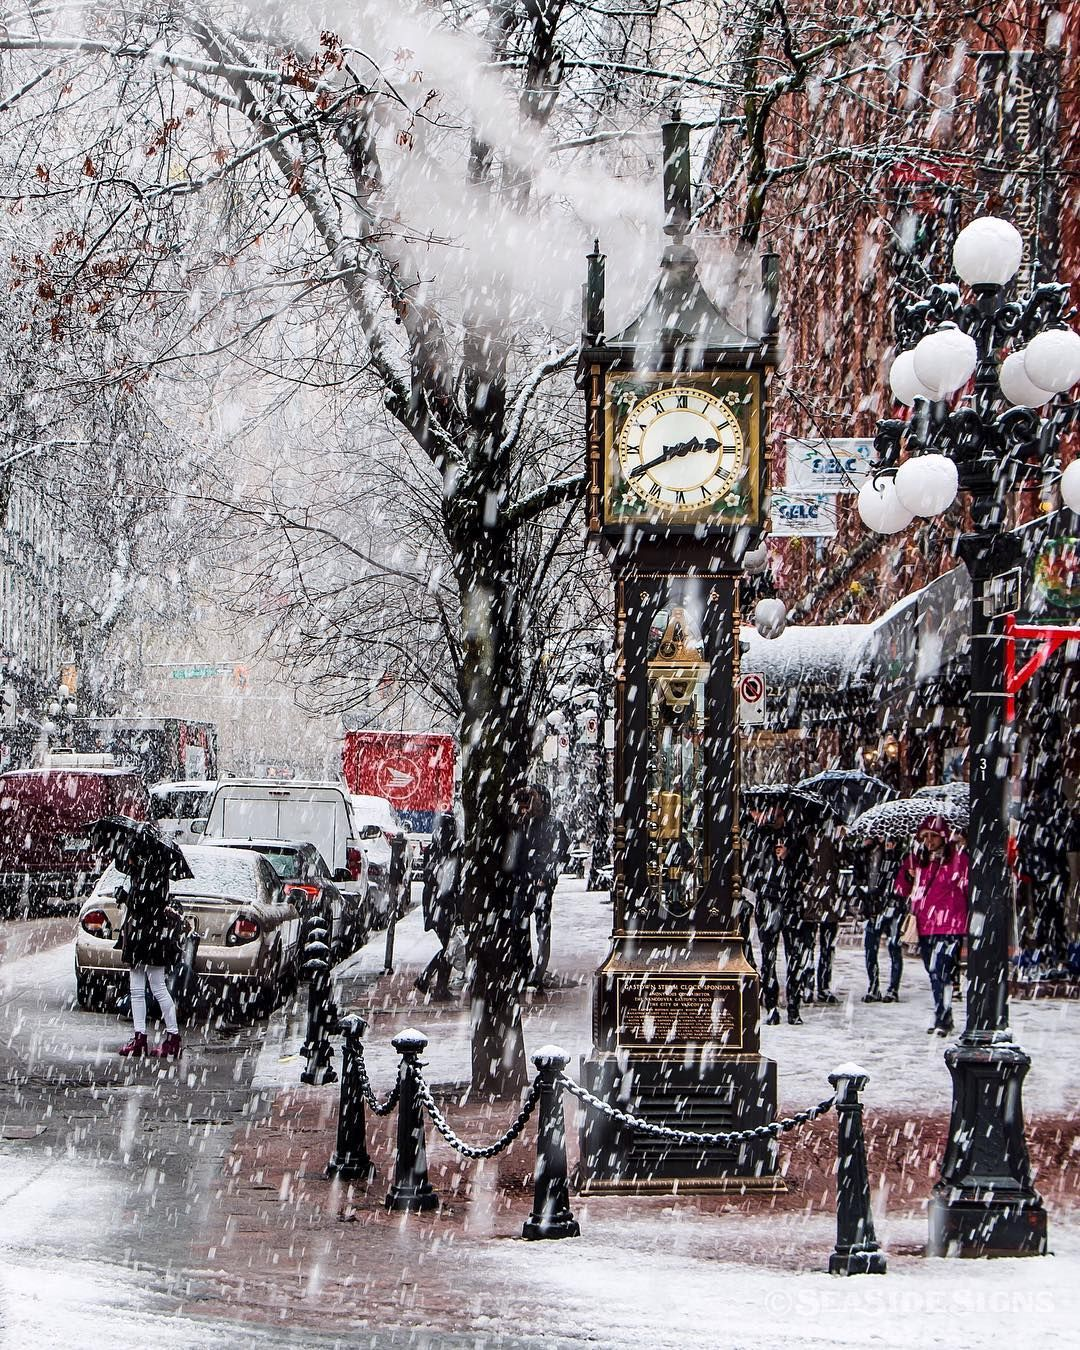 Gastown Vancouver: Glorious Gastown Yesterday's Blizzard In The Heart